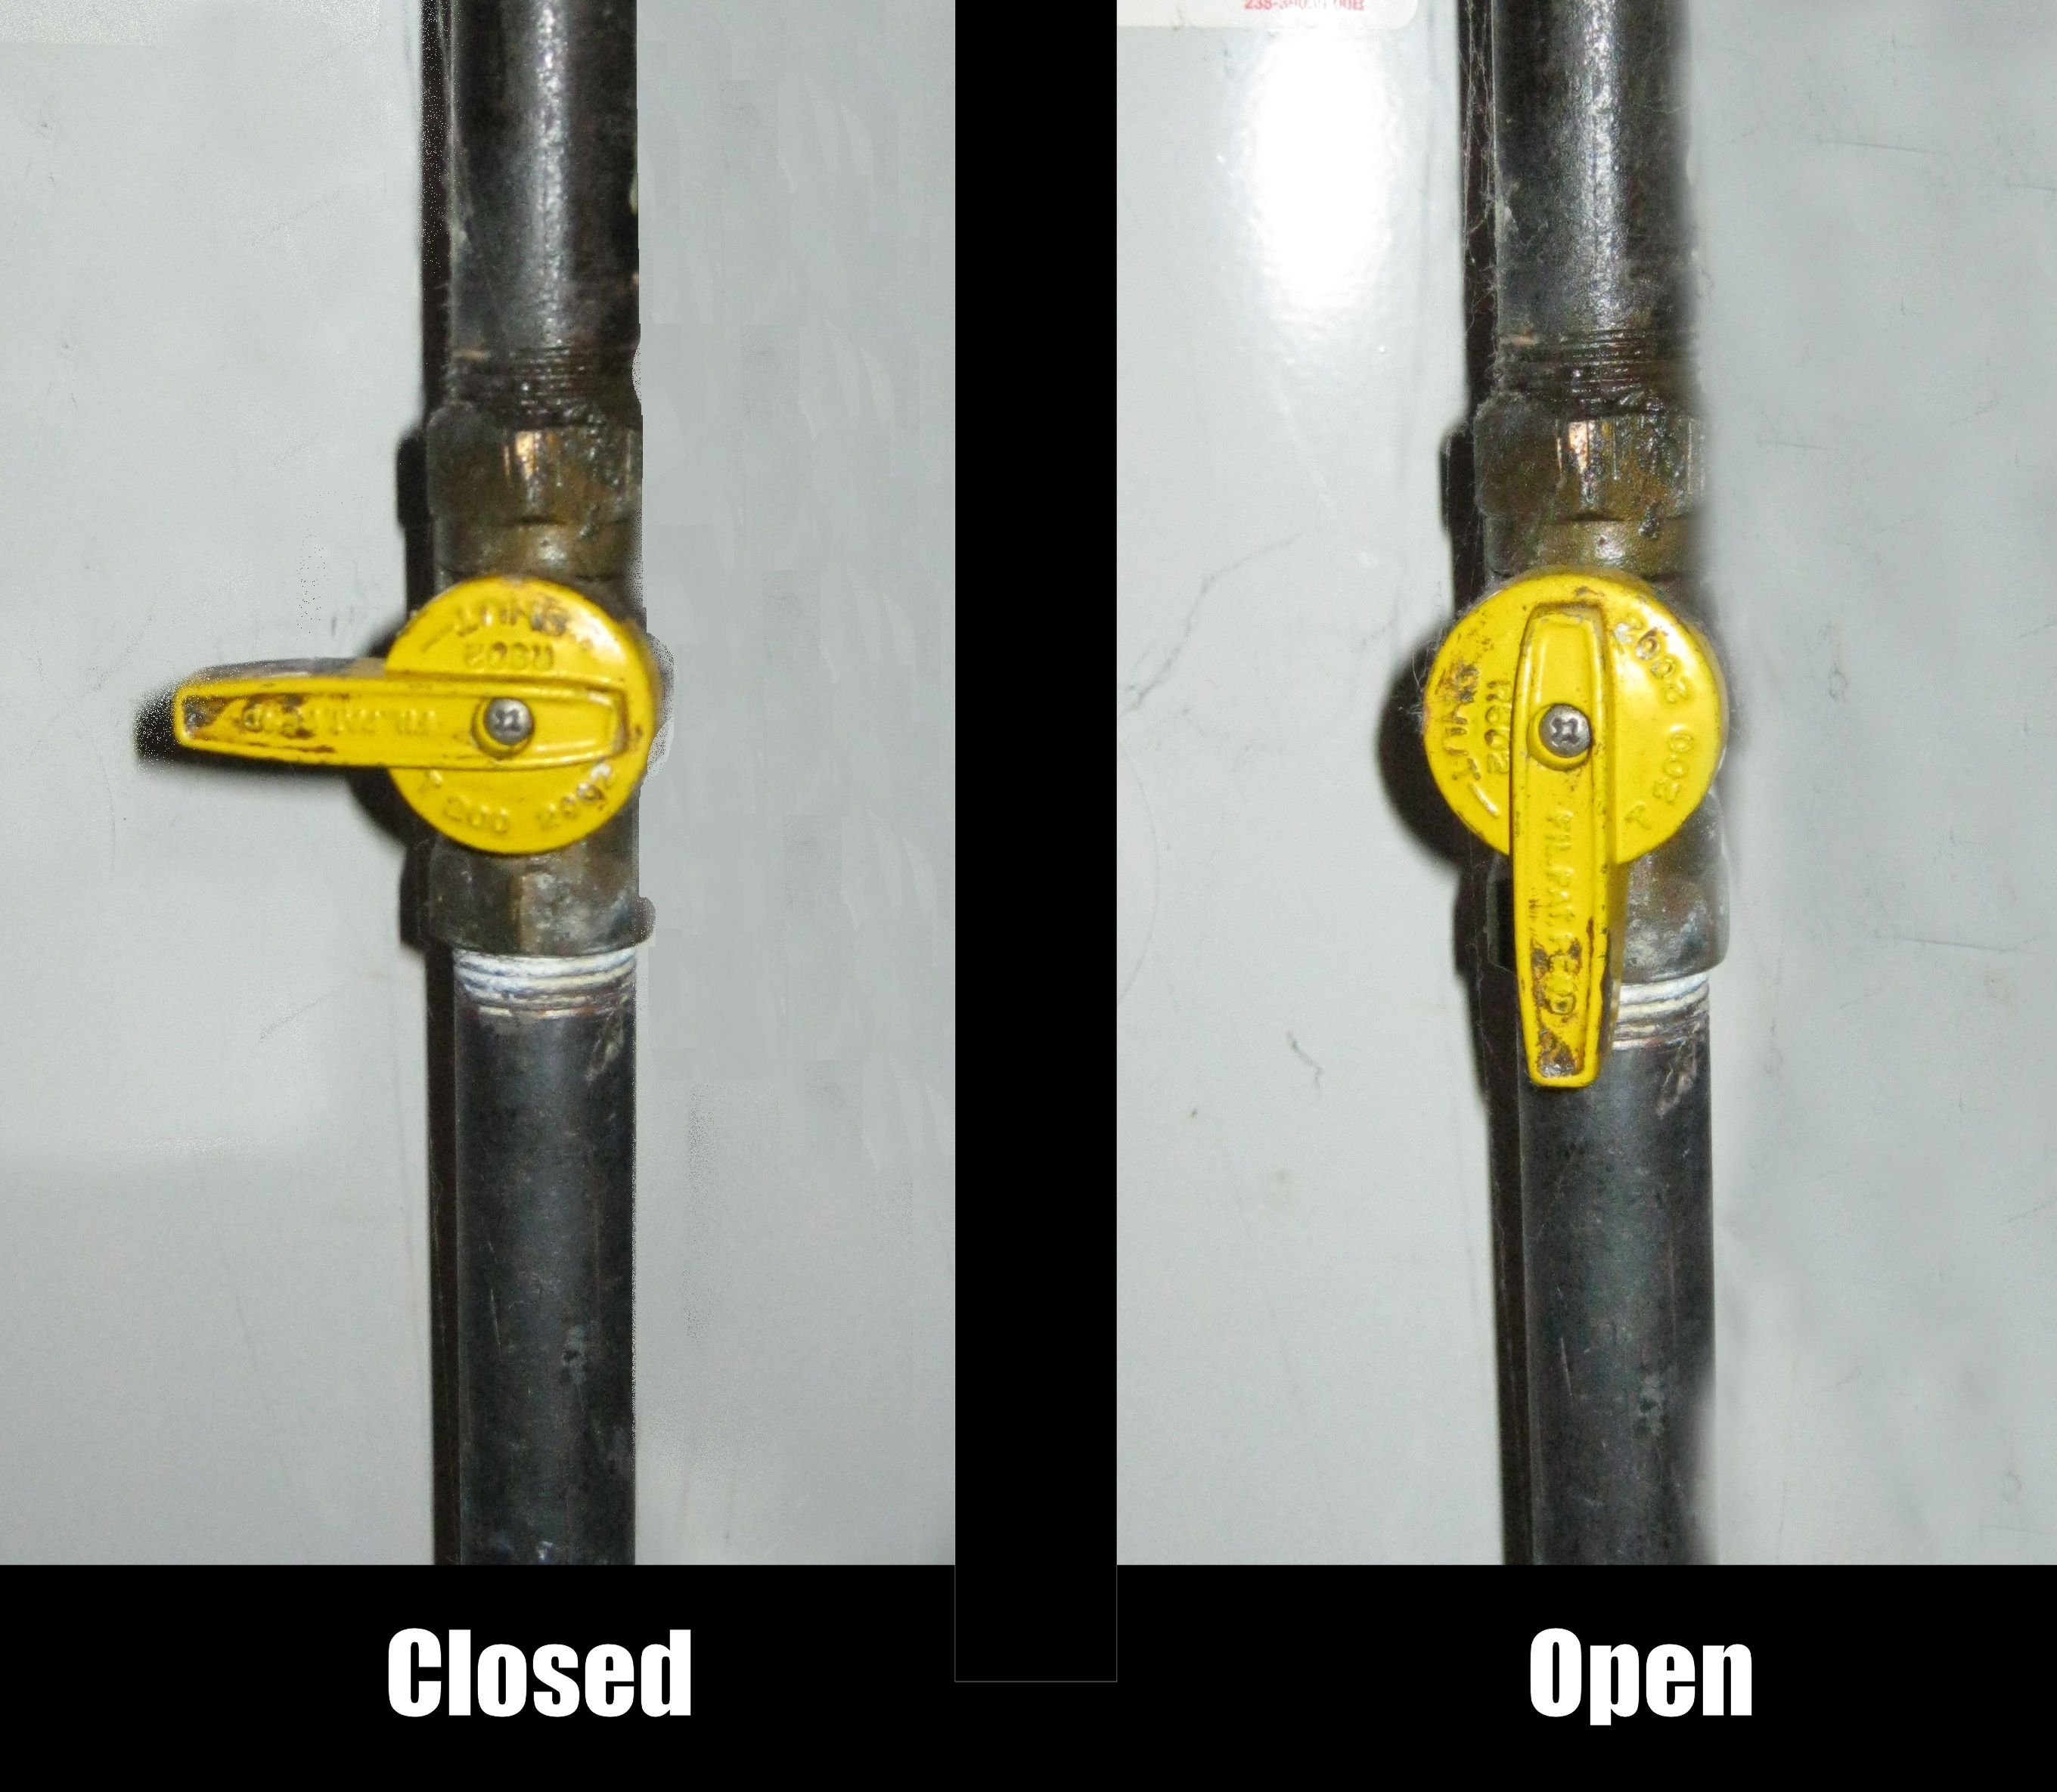 Managing Water Electric And Gas Service In Your Home Be Ready How To Shut Off Electricity An Emergency Open Closed